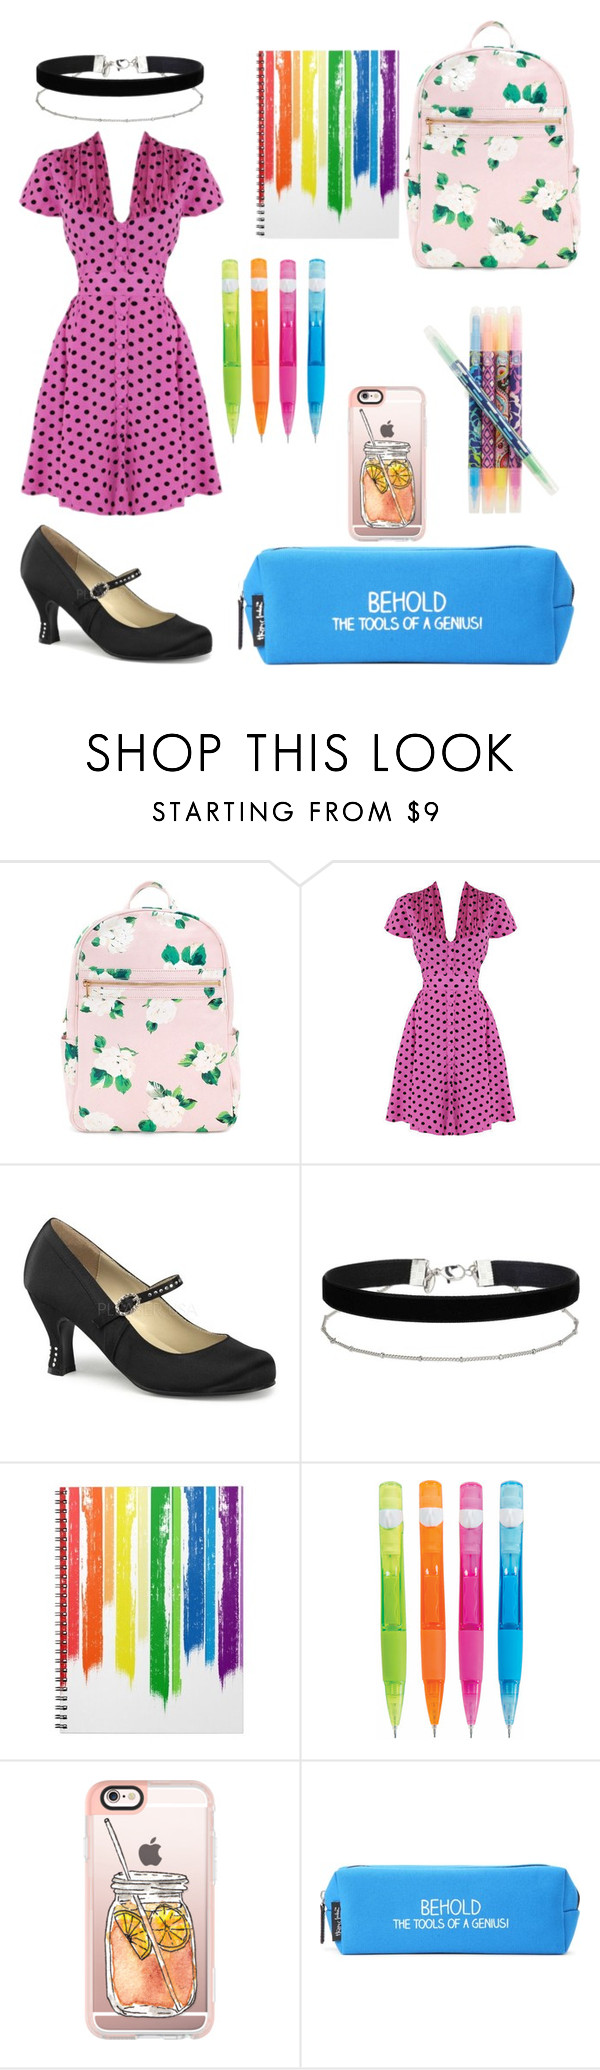 """""""Untitled #52"""" by devonsmith-1 ❤ liked on Polyvore featuring Miss Selfridge, Casetify, Happy Jackson, Vera Bradley, backpacks, contestentry and PVStyleInsiderContest"""